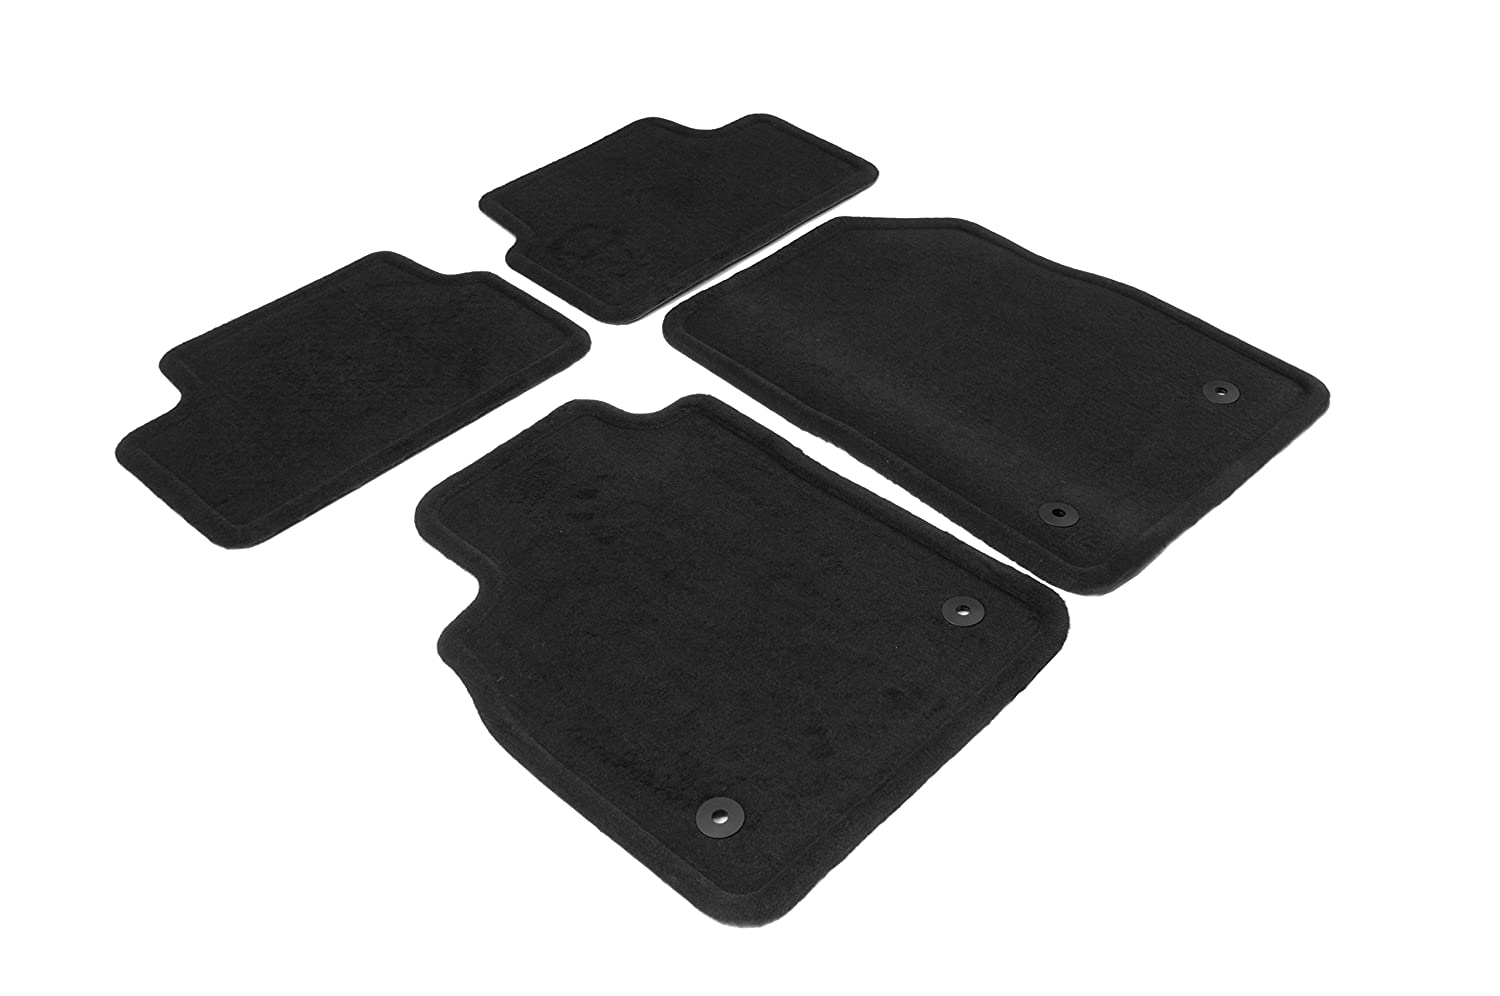 GM Accessories 22878591 Front and Rear Carpeted Floor Mats in Black General Motors